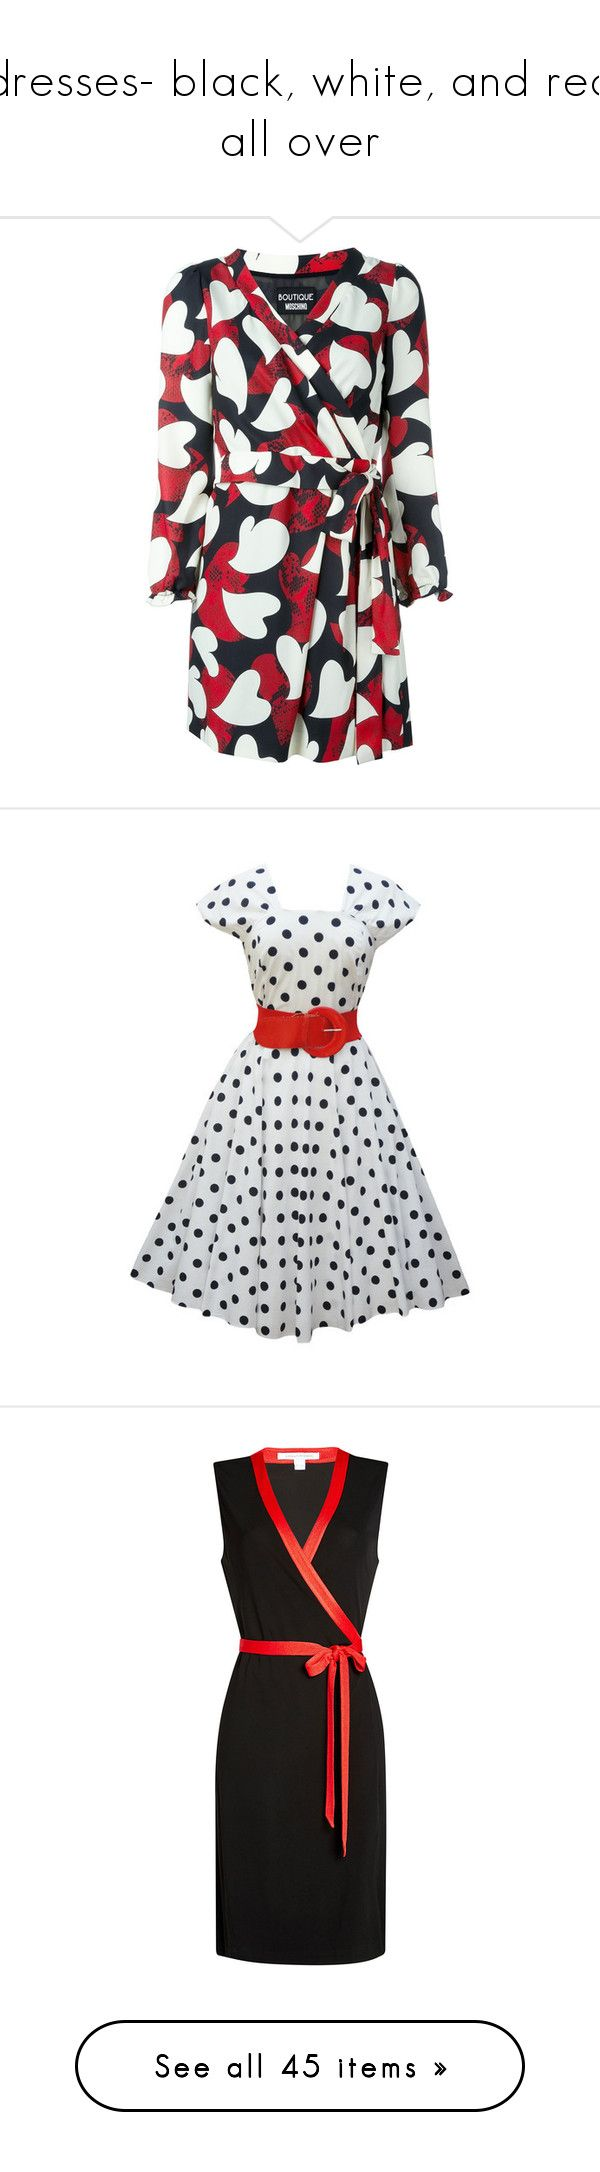 """""""dresses- black, white, and red all over"""" by jennifertrimble ❤ liked on Polyvore featuring dresses, black, heart print dress, wrap dresses, heart pattern dress, boutique moschino dress, boutique moschino, vestidos, short dresses and polka dot"""